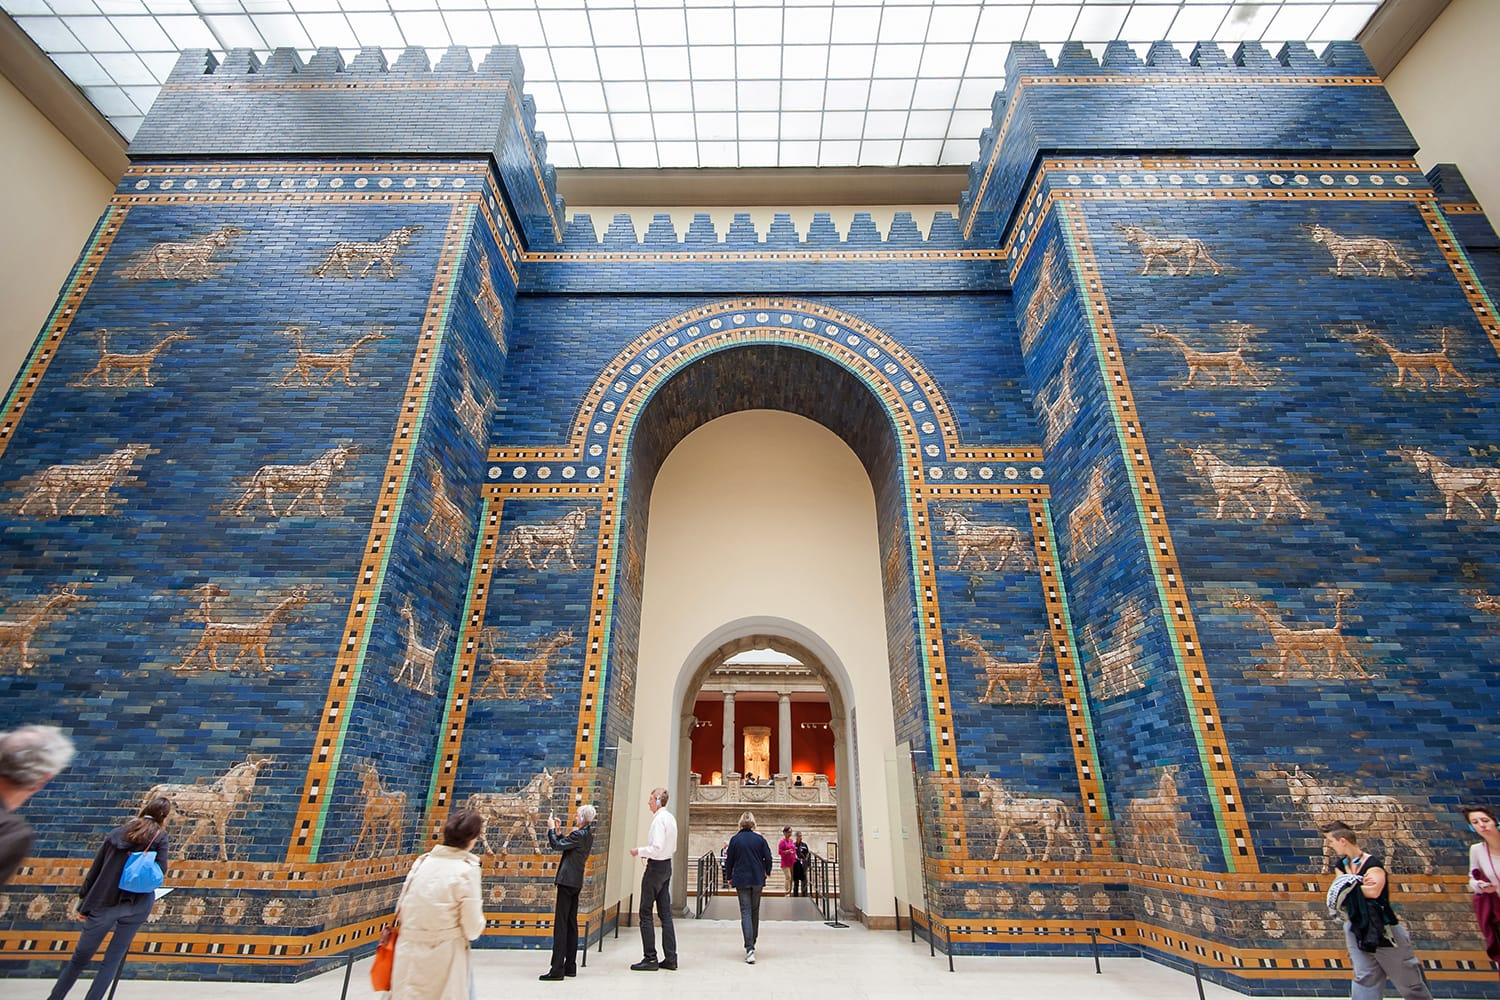 Tourists in front of Babylonian city wall at the Pergamon museum in Berlin, Germany